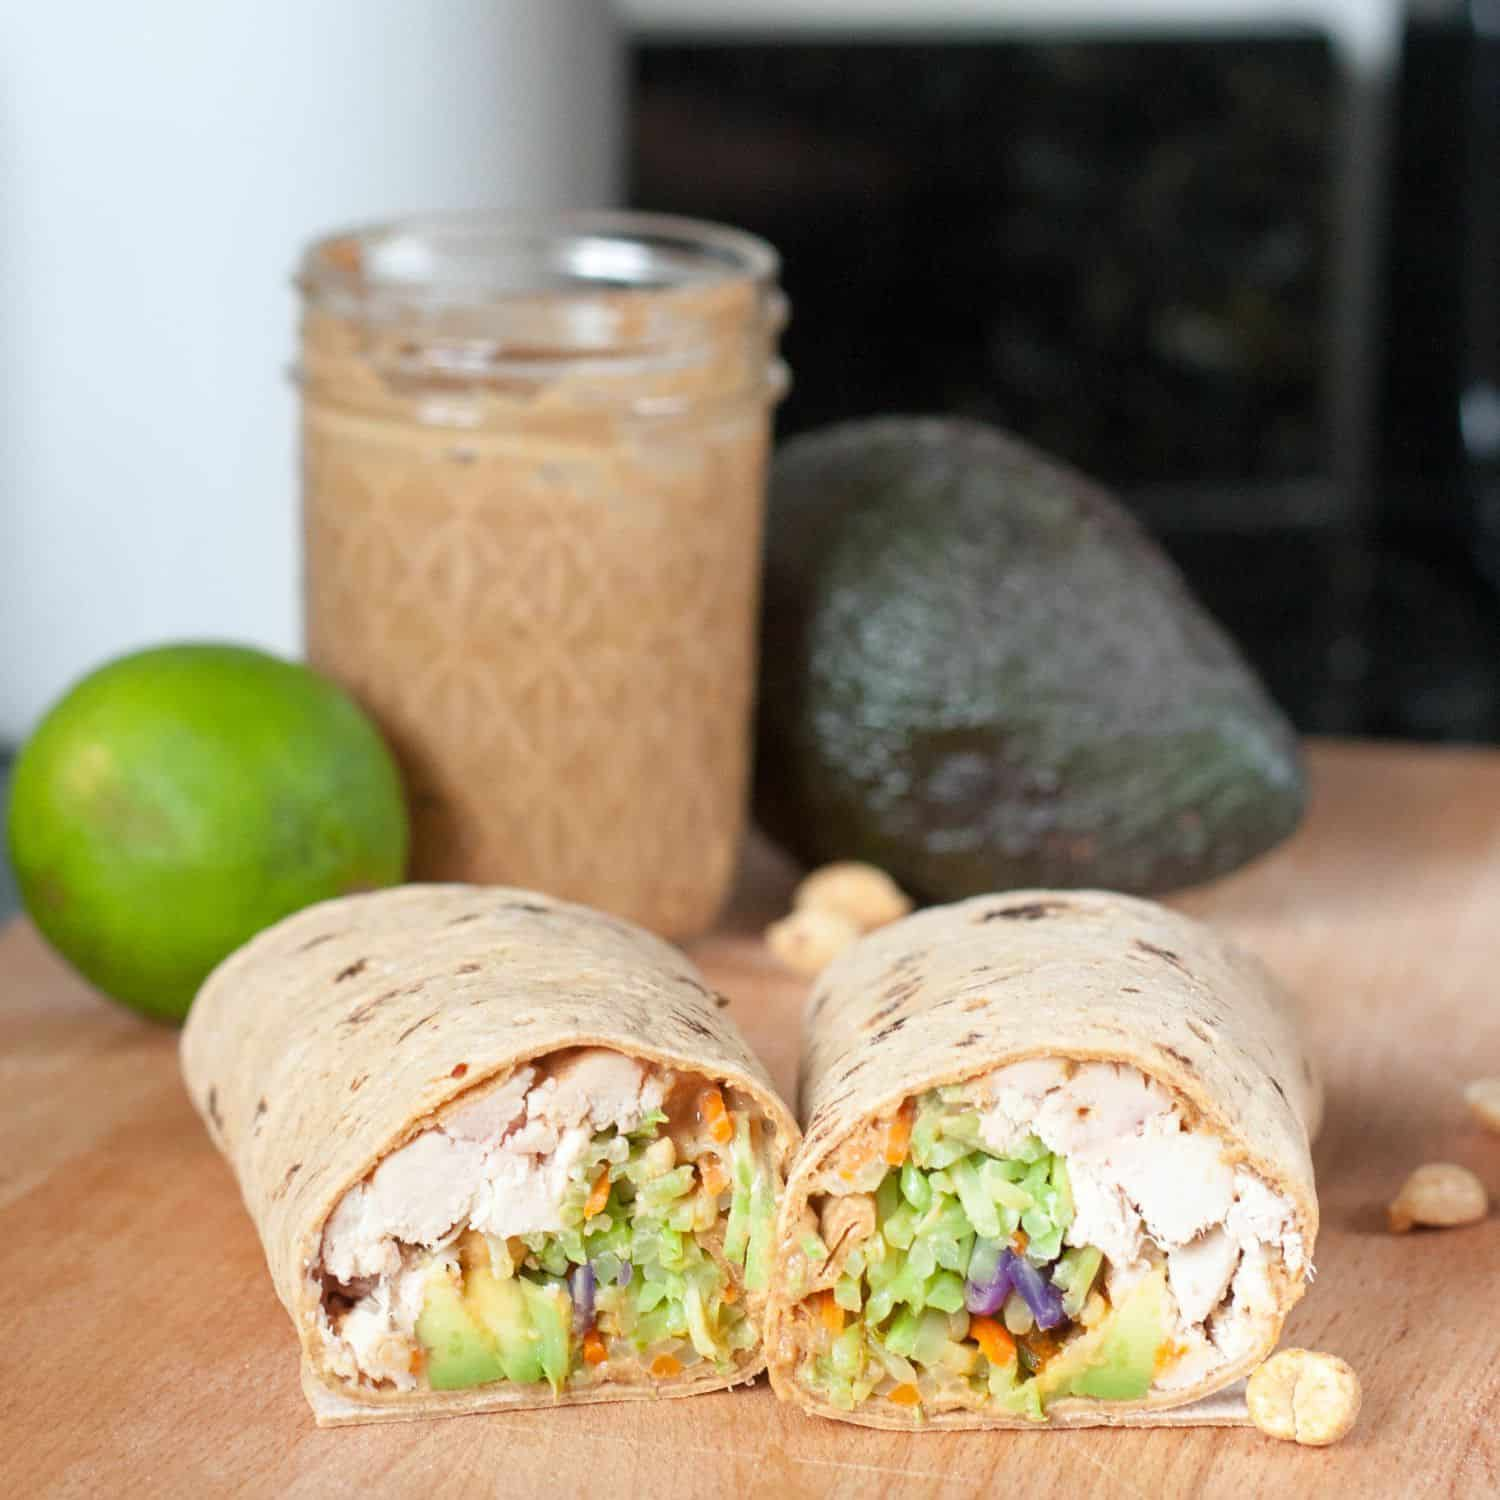 Easy Thai Peanut Wrap is a healthy make ahead quick meal. Get the recipe on GoodieGodmother.com